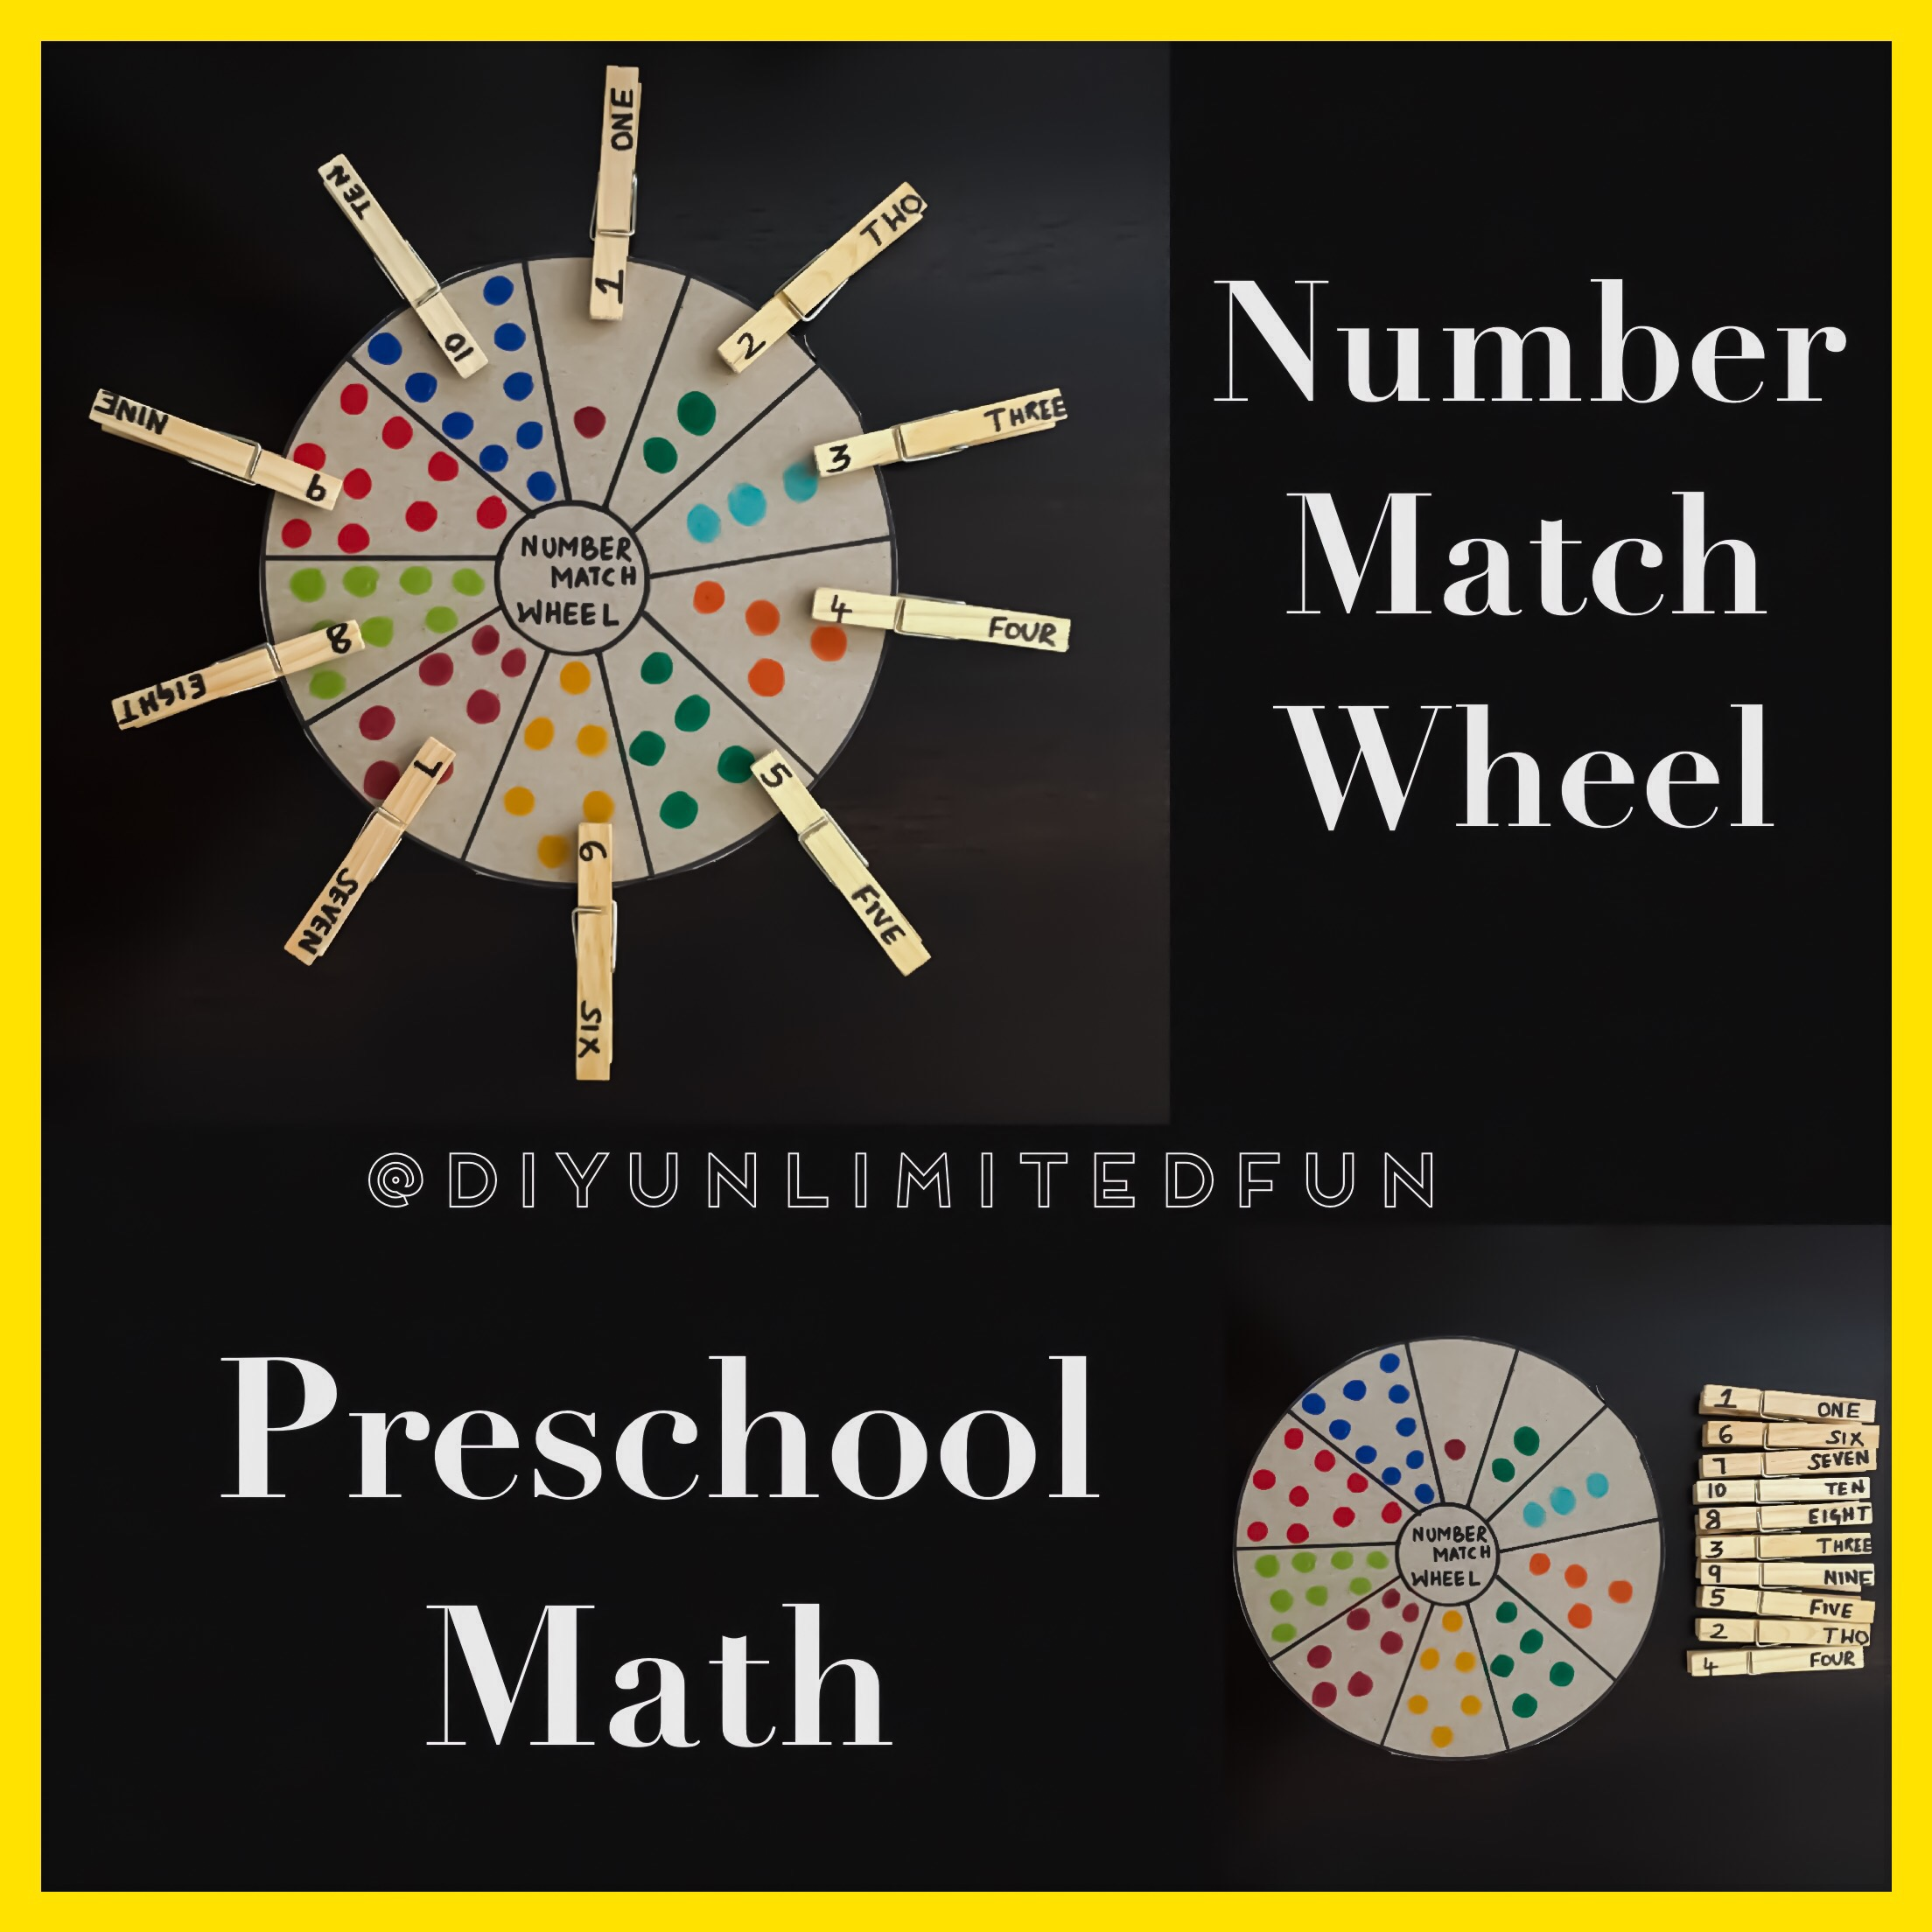 Number Match Wheel Preschool Math Simple Diys Kids Activities